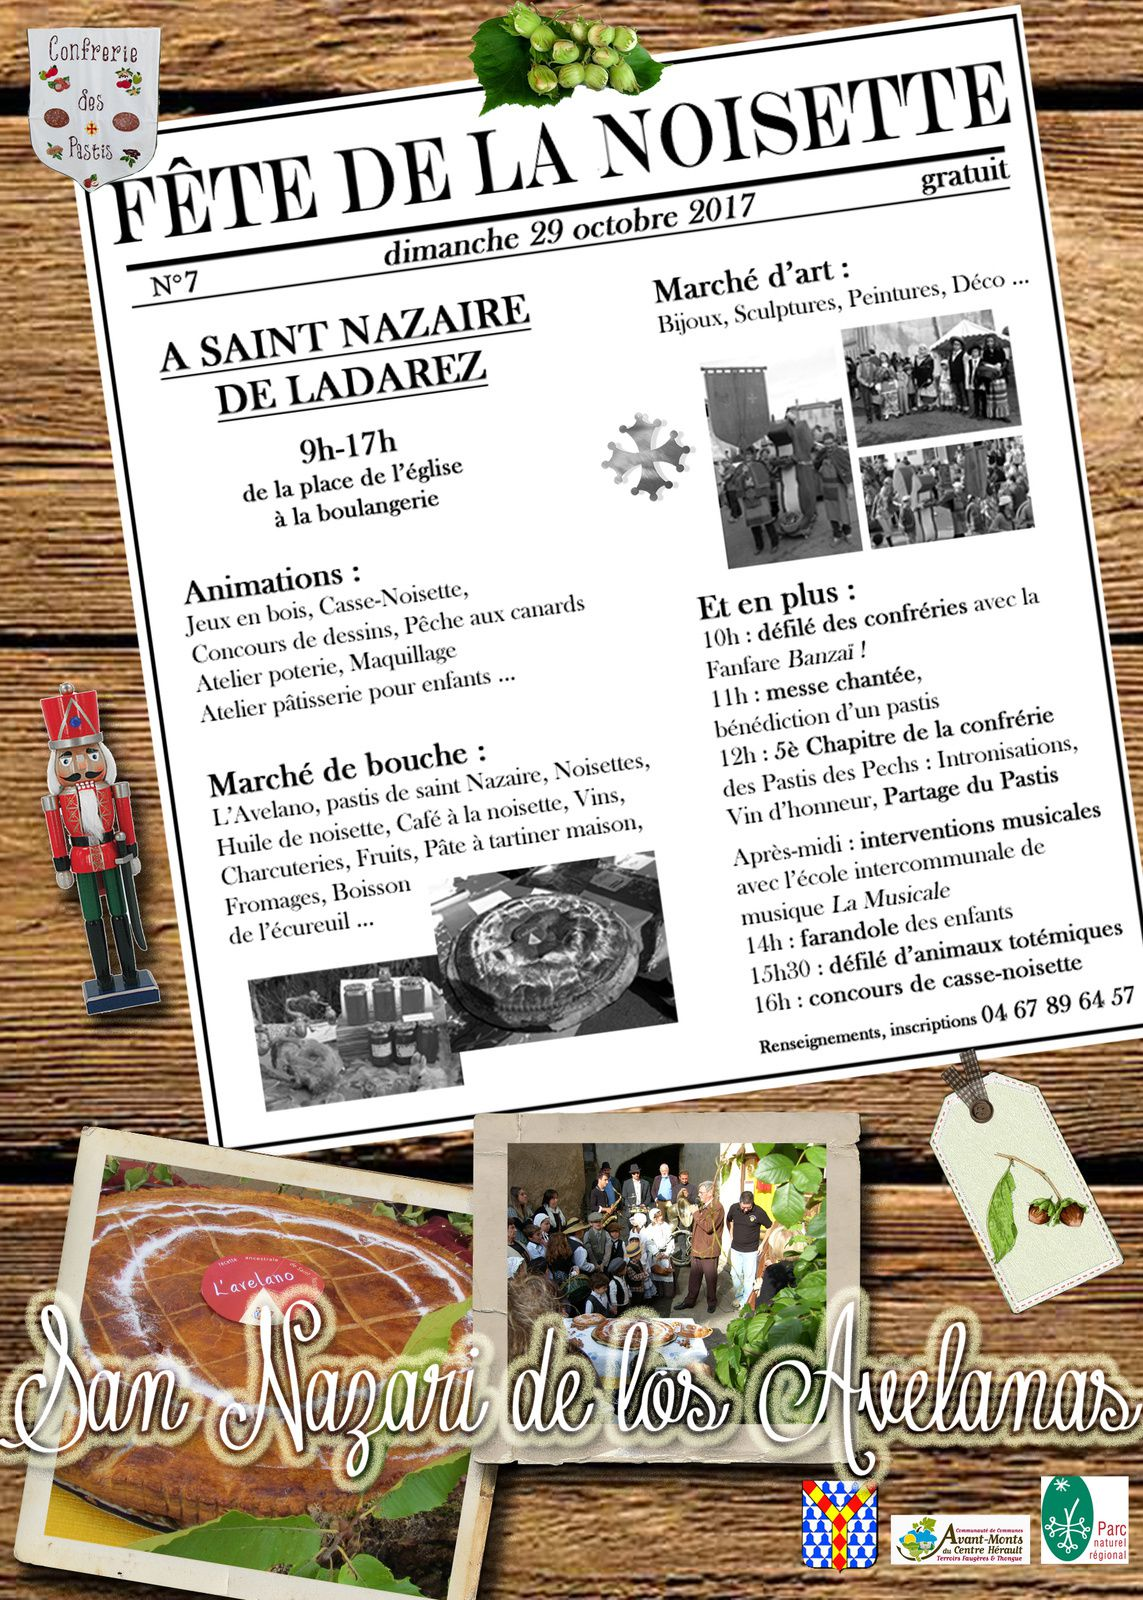 FÊTE DE LA NOISETTE-DIMANCHE 29 OCTOBRE